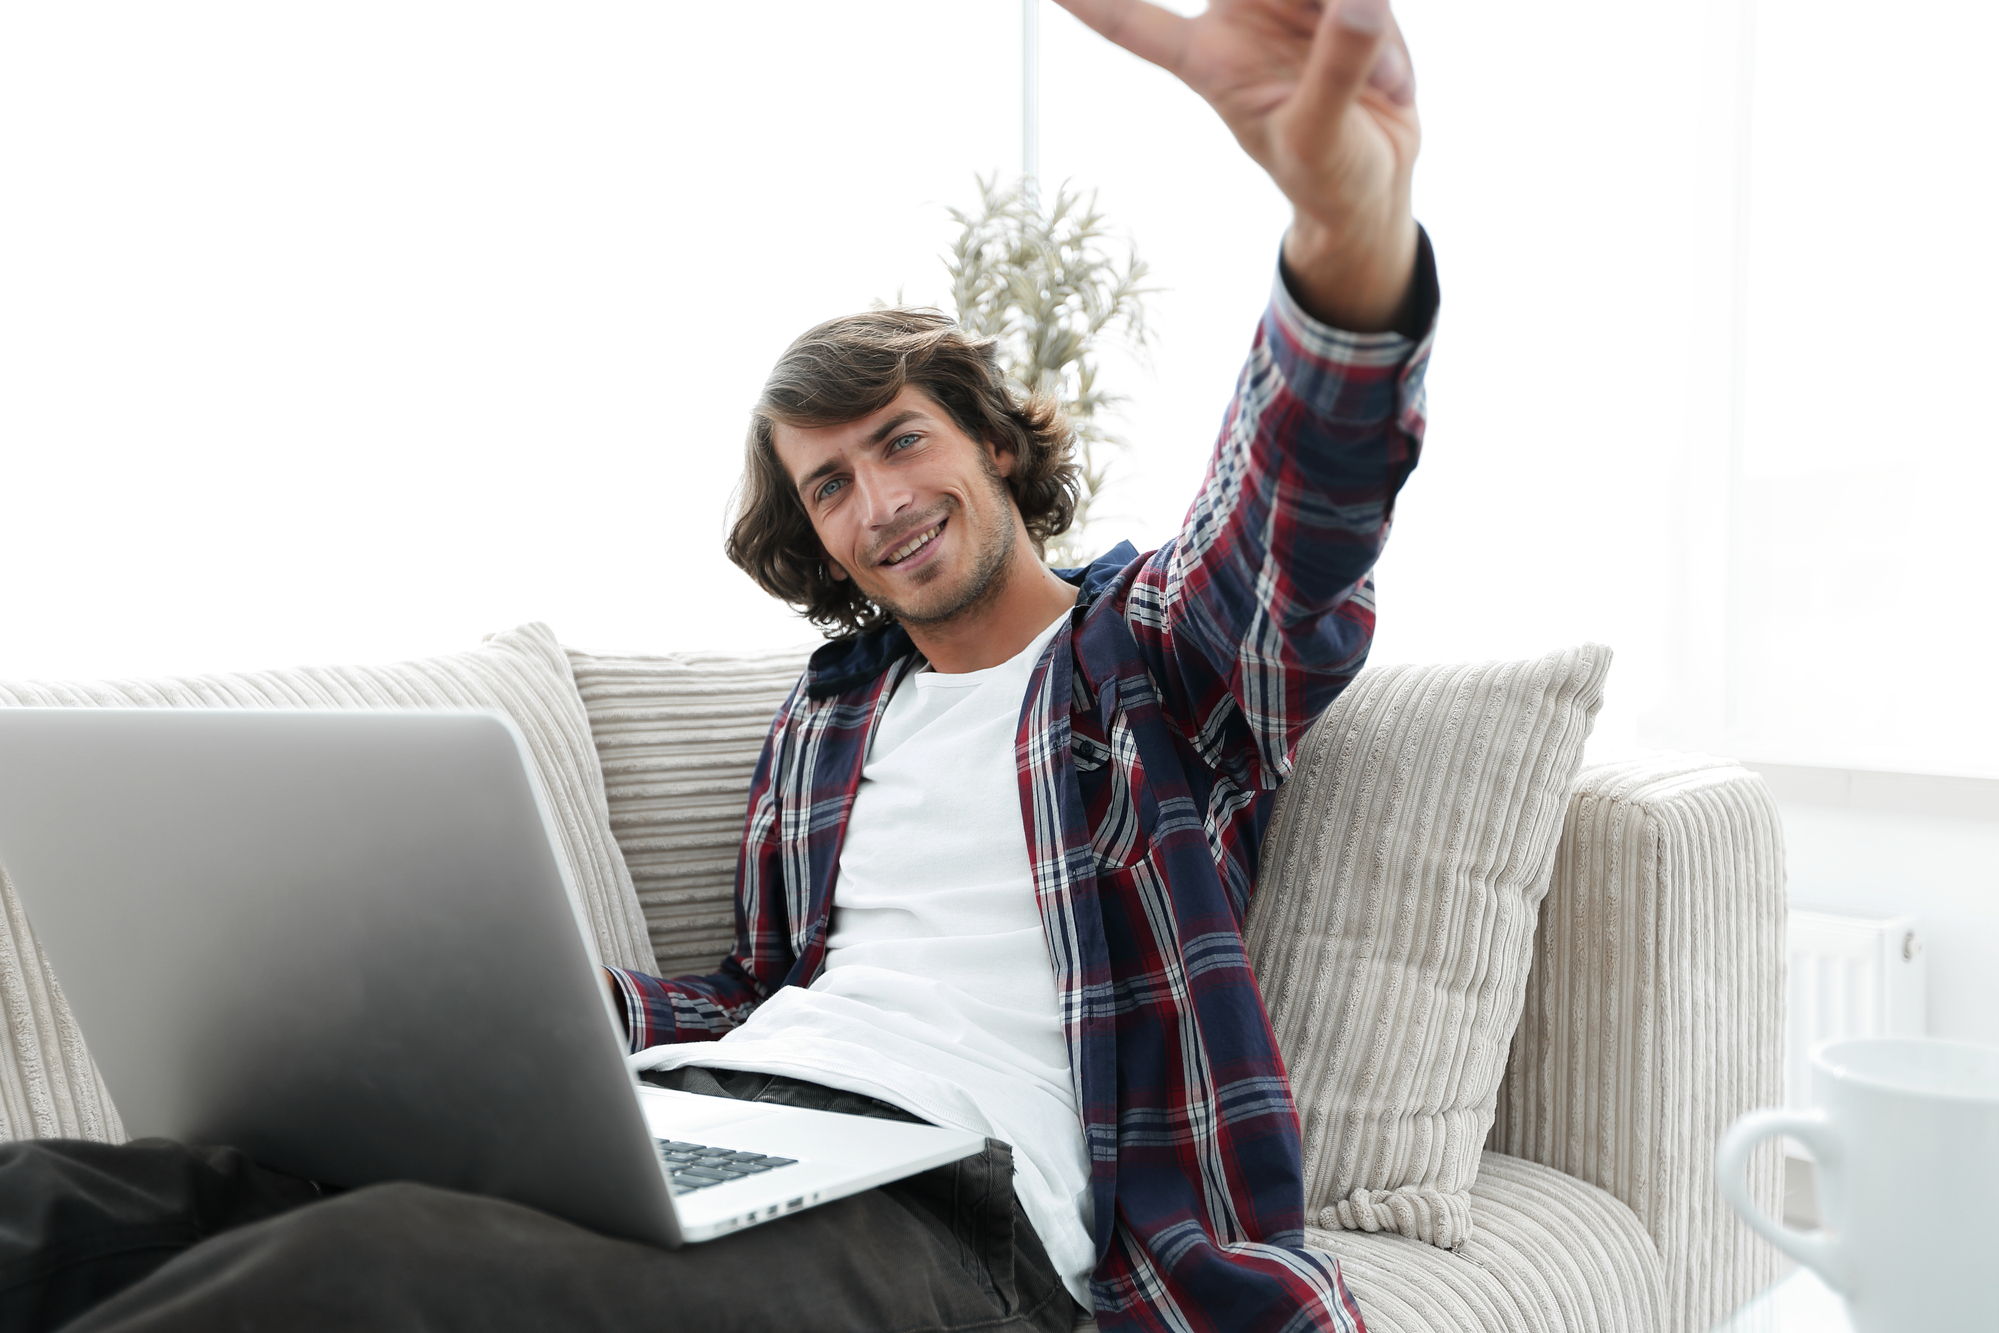 Happy guy with laptop sitting on sofa and showing his hand a winning gesture